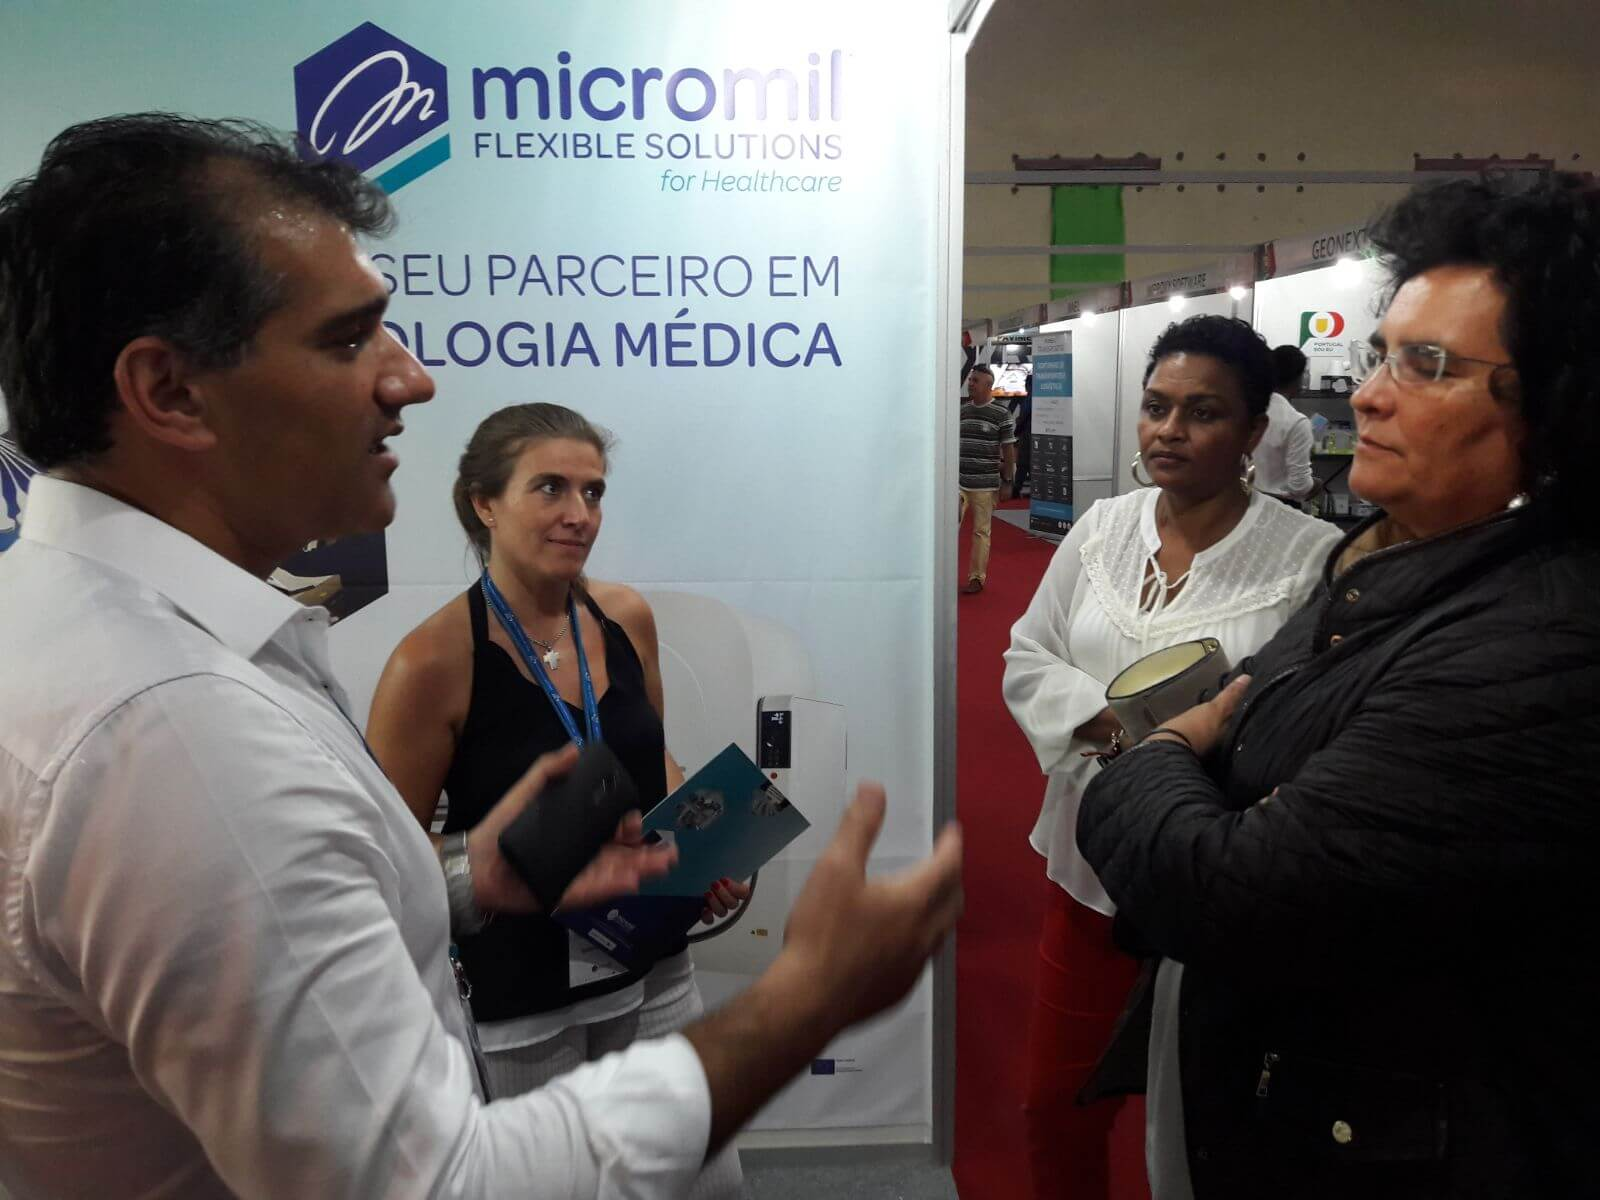 Stand Micromil na FIC micromil Micromil na Feira Internacional de Cabo Verde micromil fic novembro